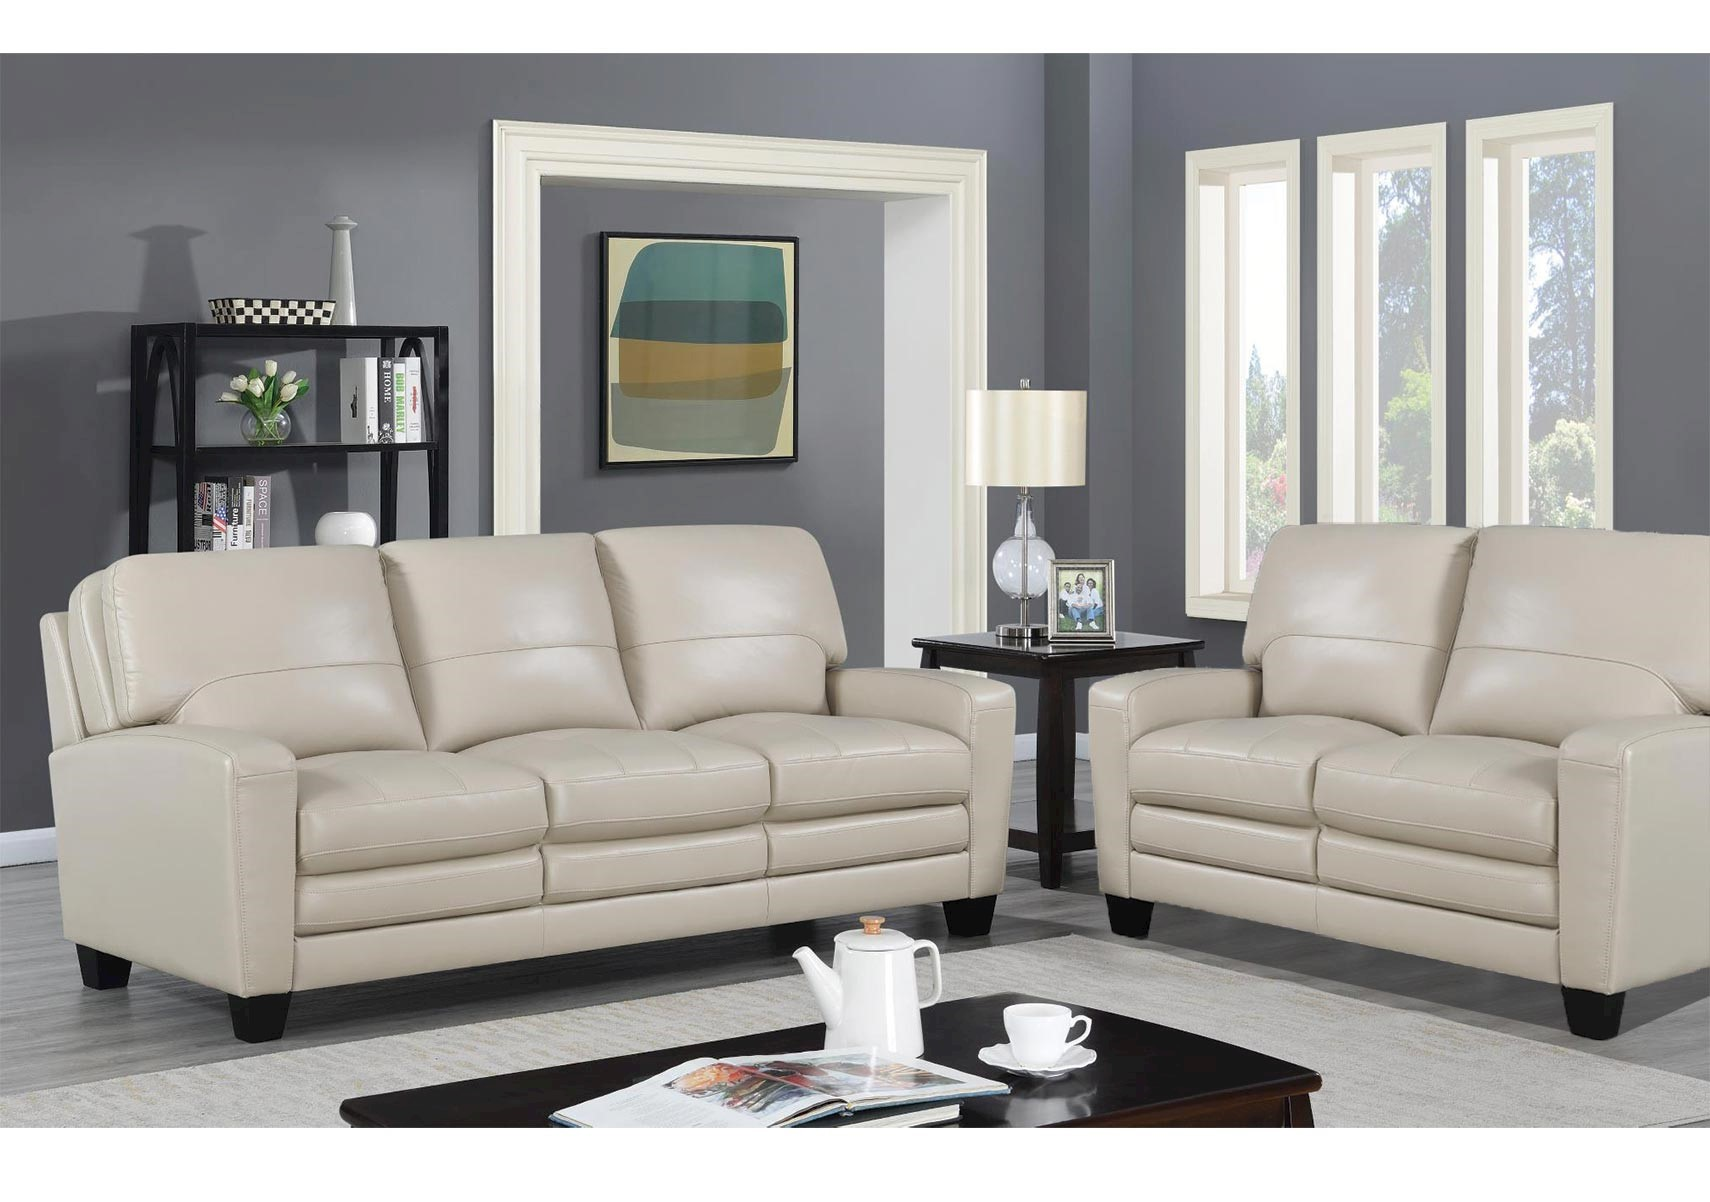 Lacks | Anjou Cream 2-Pc Leather-Match Living Room Set